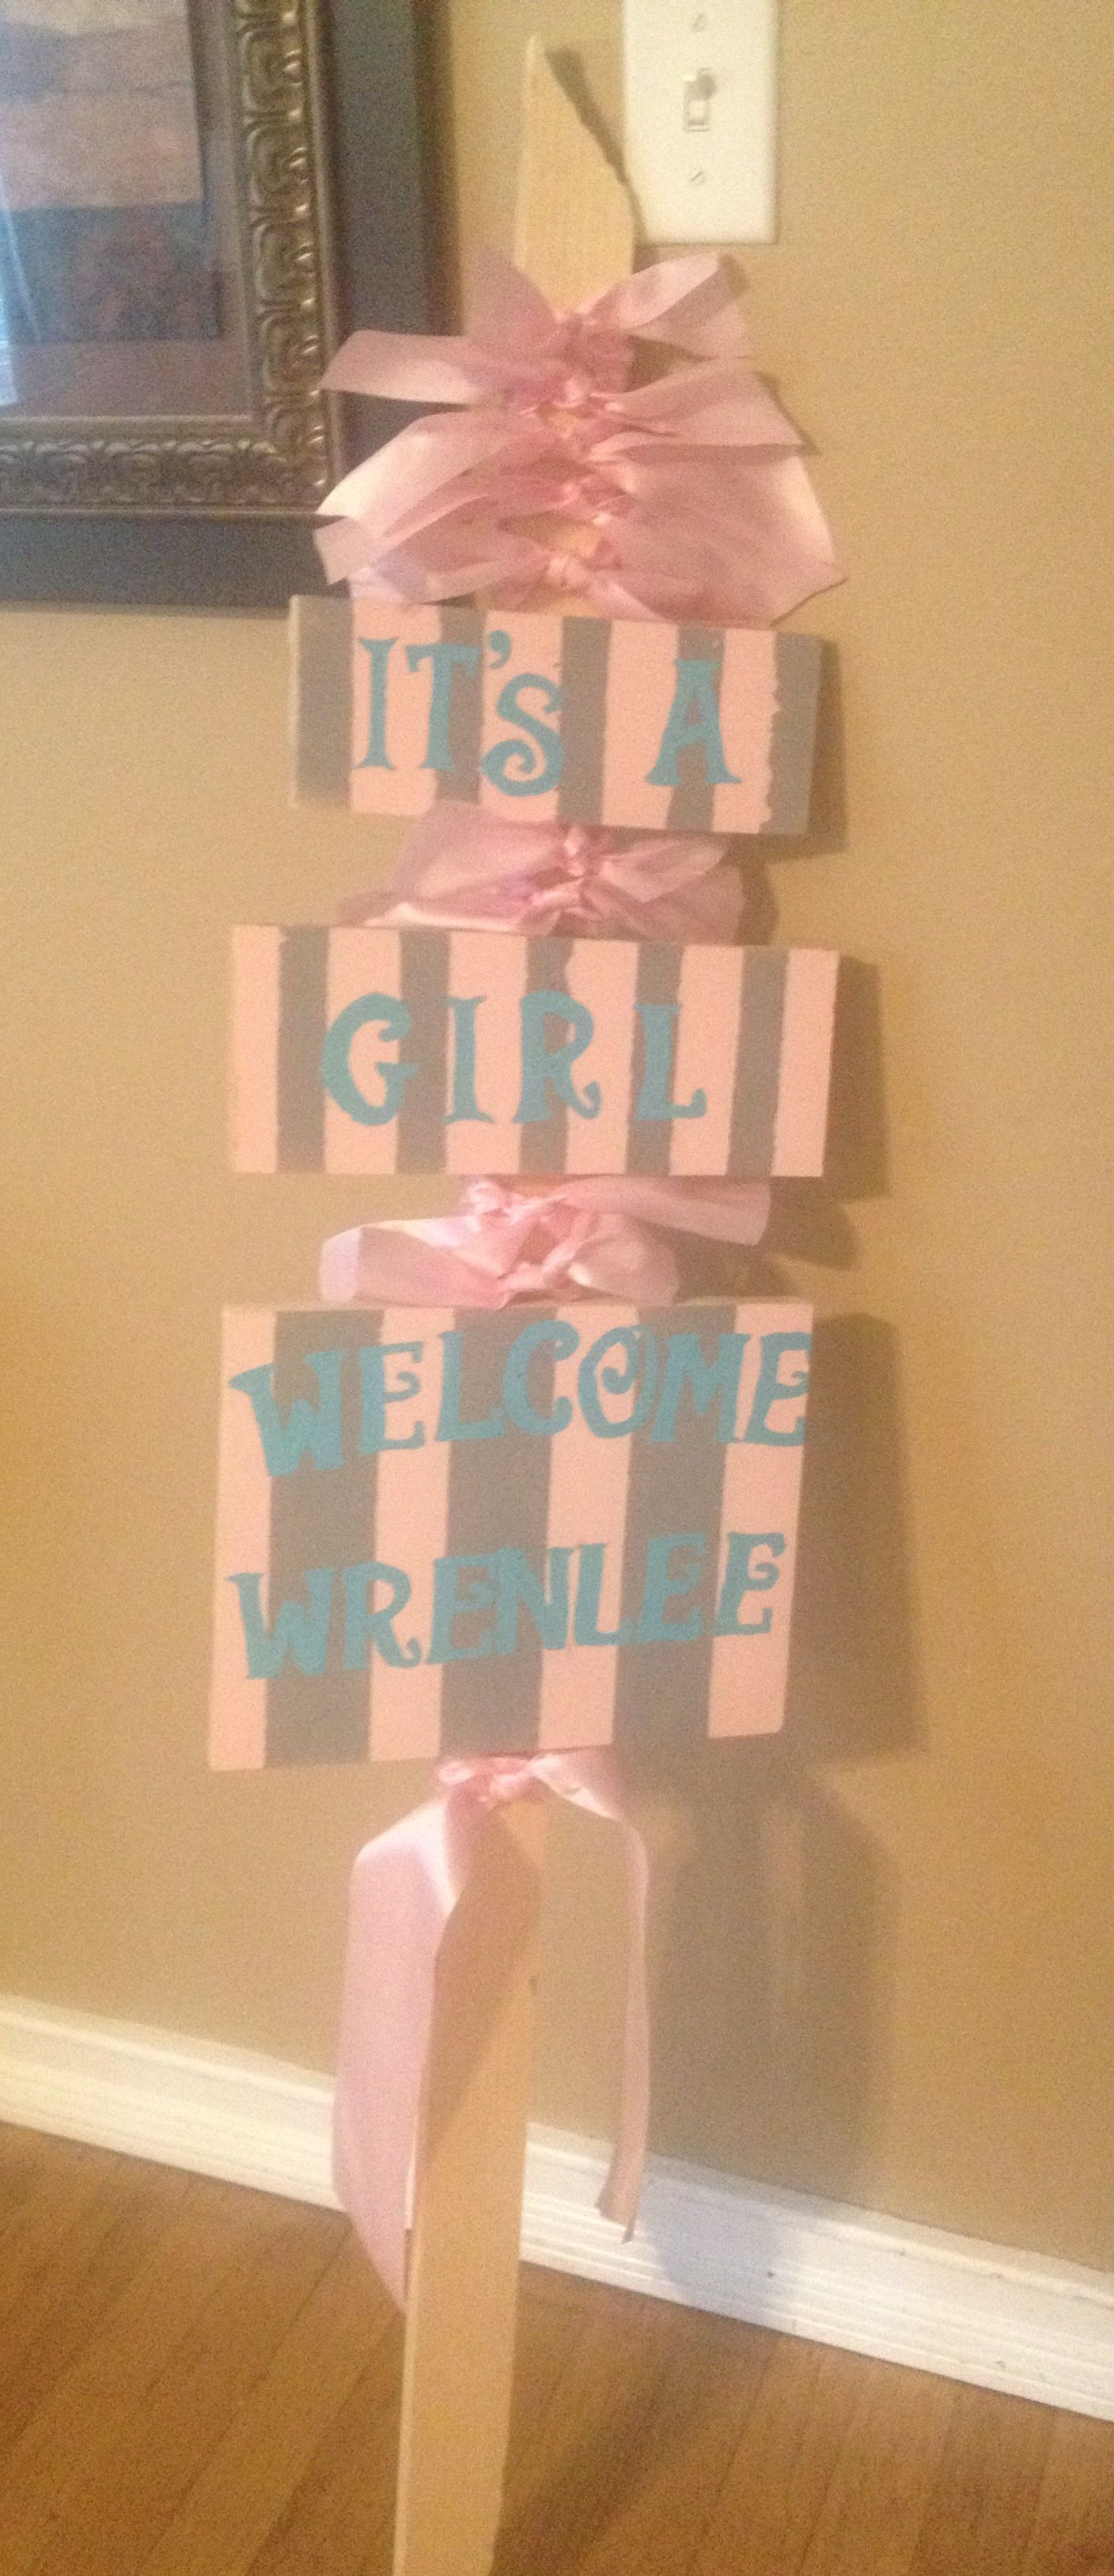 Welcome Baby Home Yard Sign. Ideas For Decorating Mailbox And Yard For The  New Parents